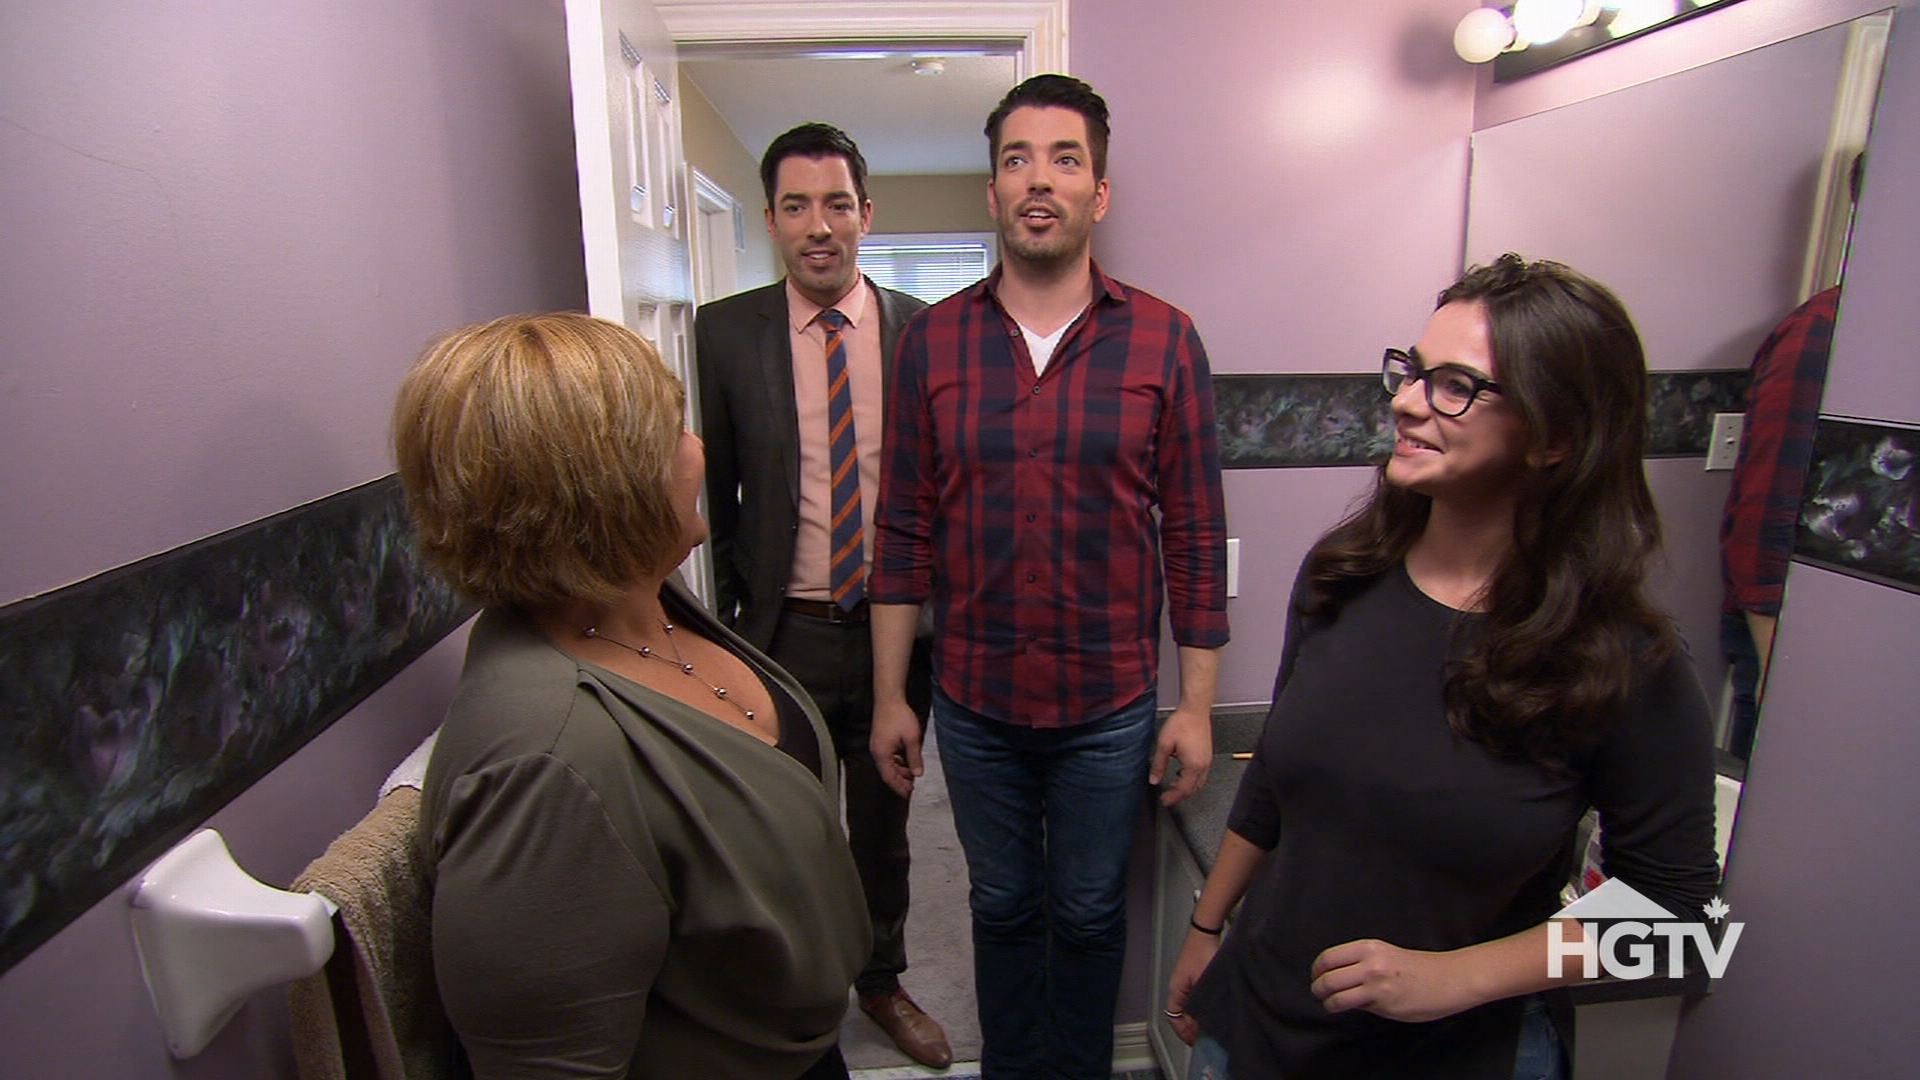 HGTV's Property Brothers are casting Calgary families looking for the renovation of their dreams!